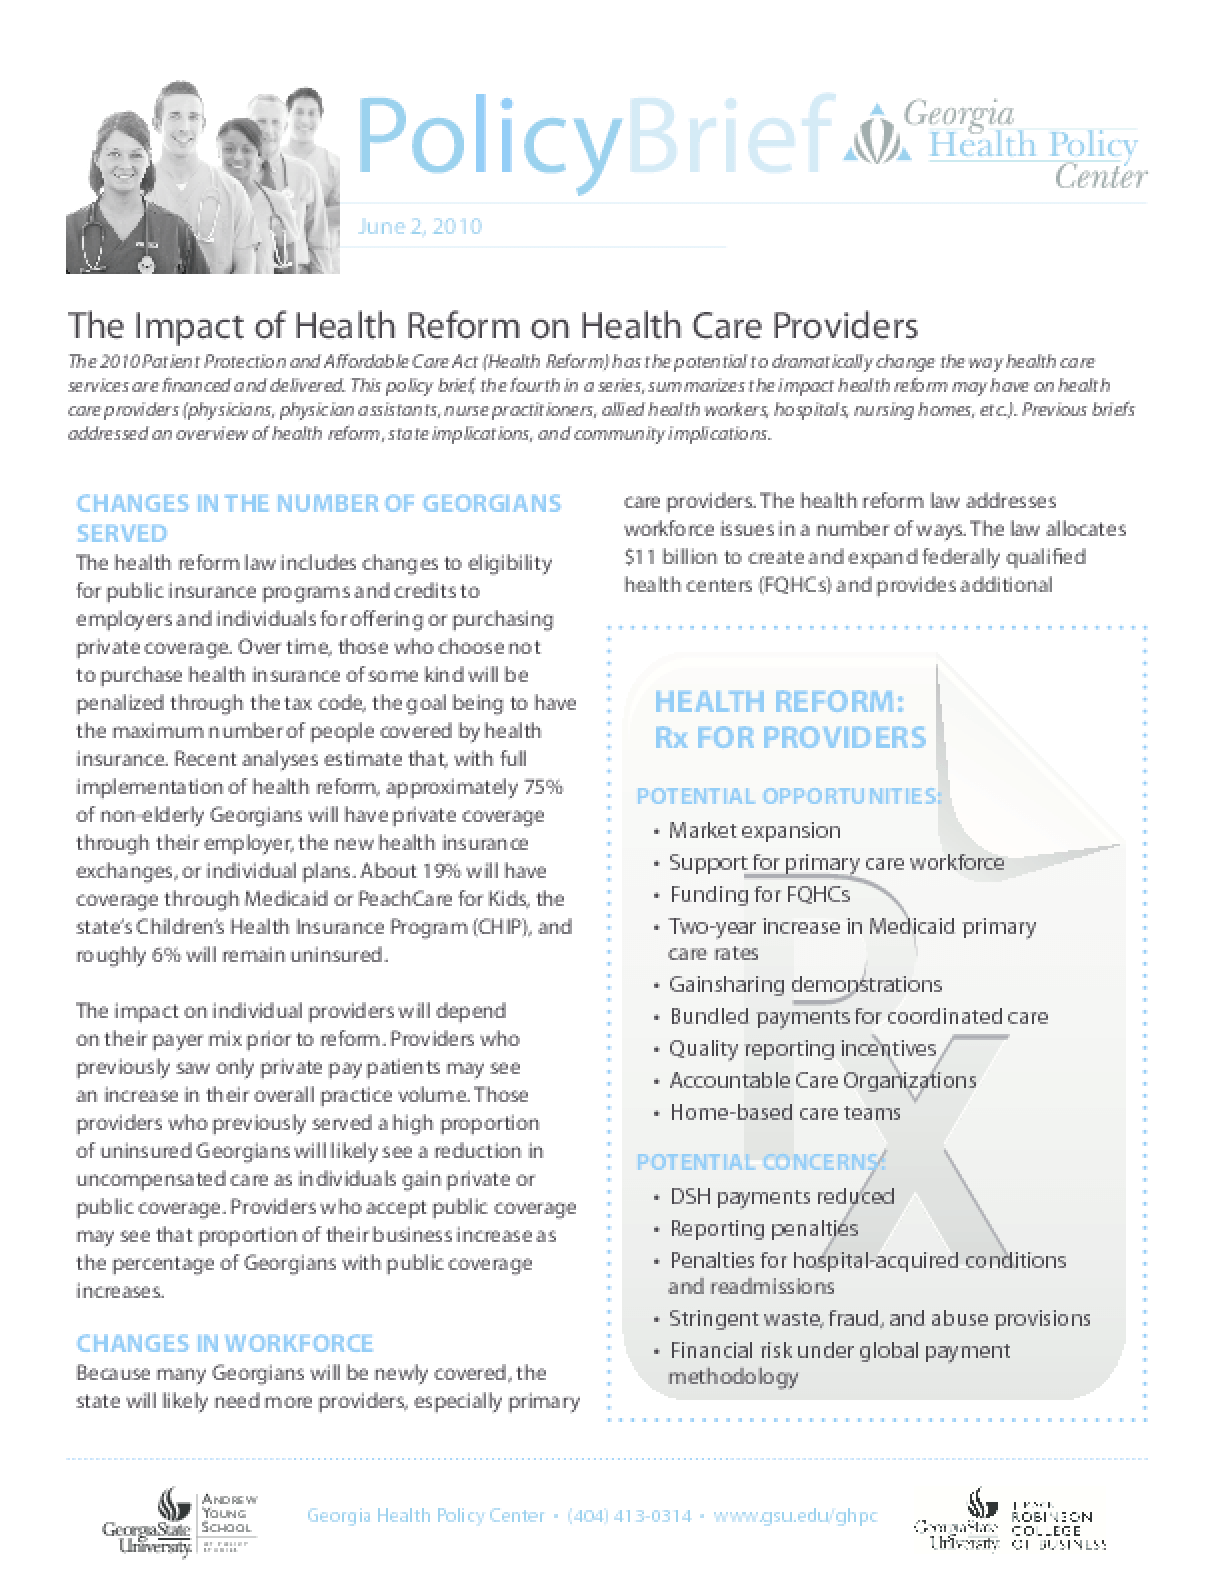 The Impact of Health Reform on Health Care Providers